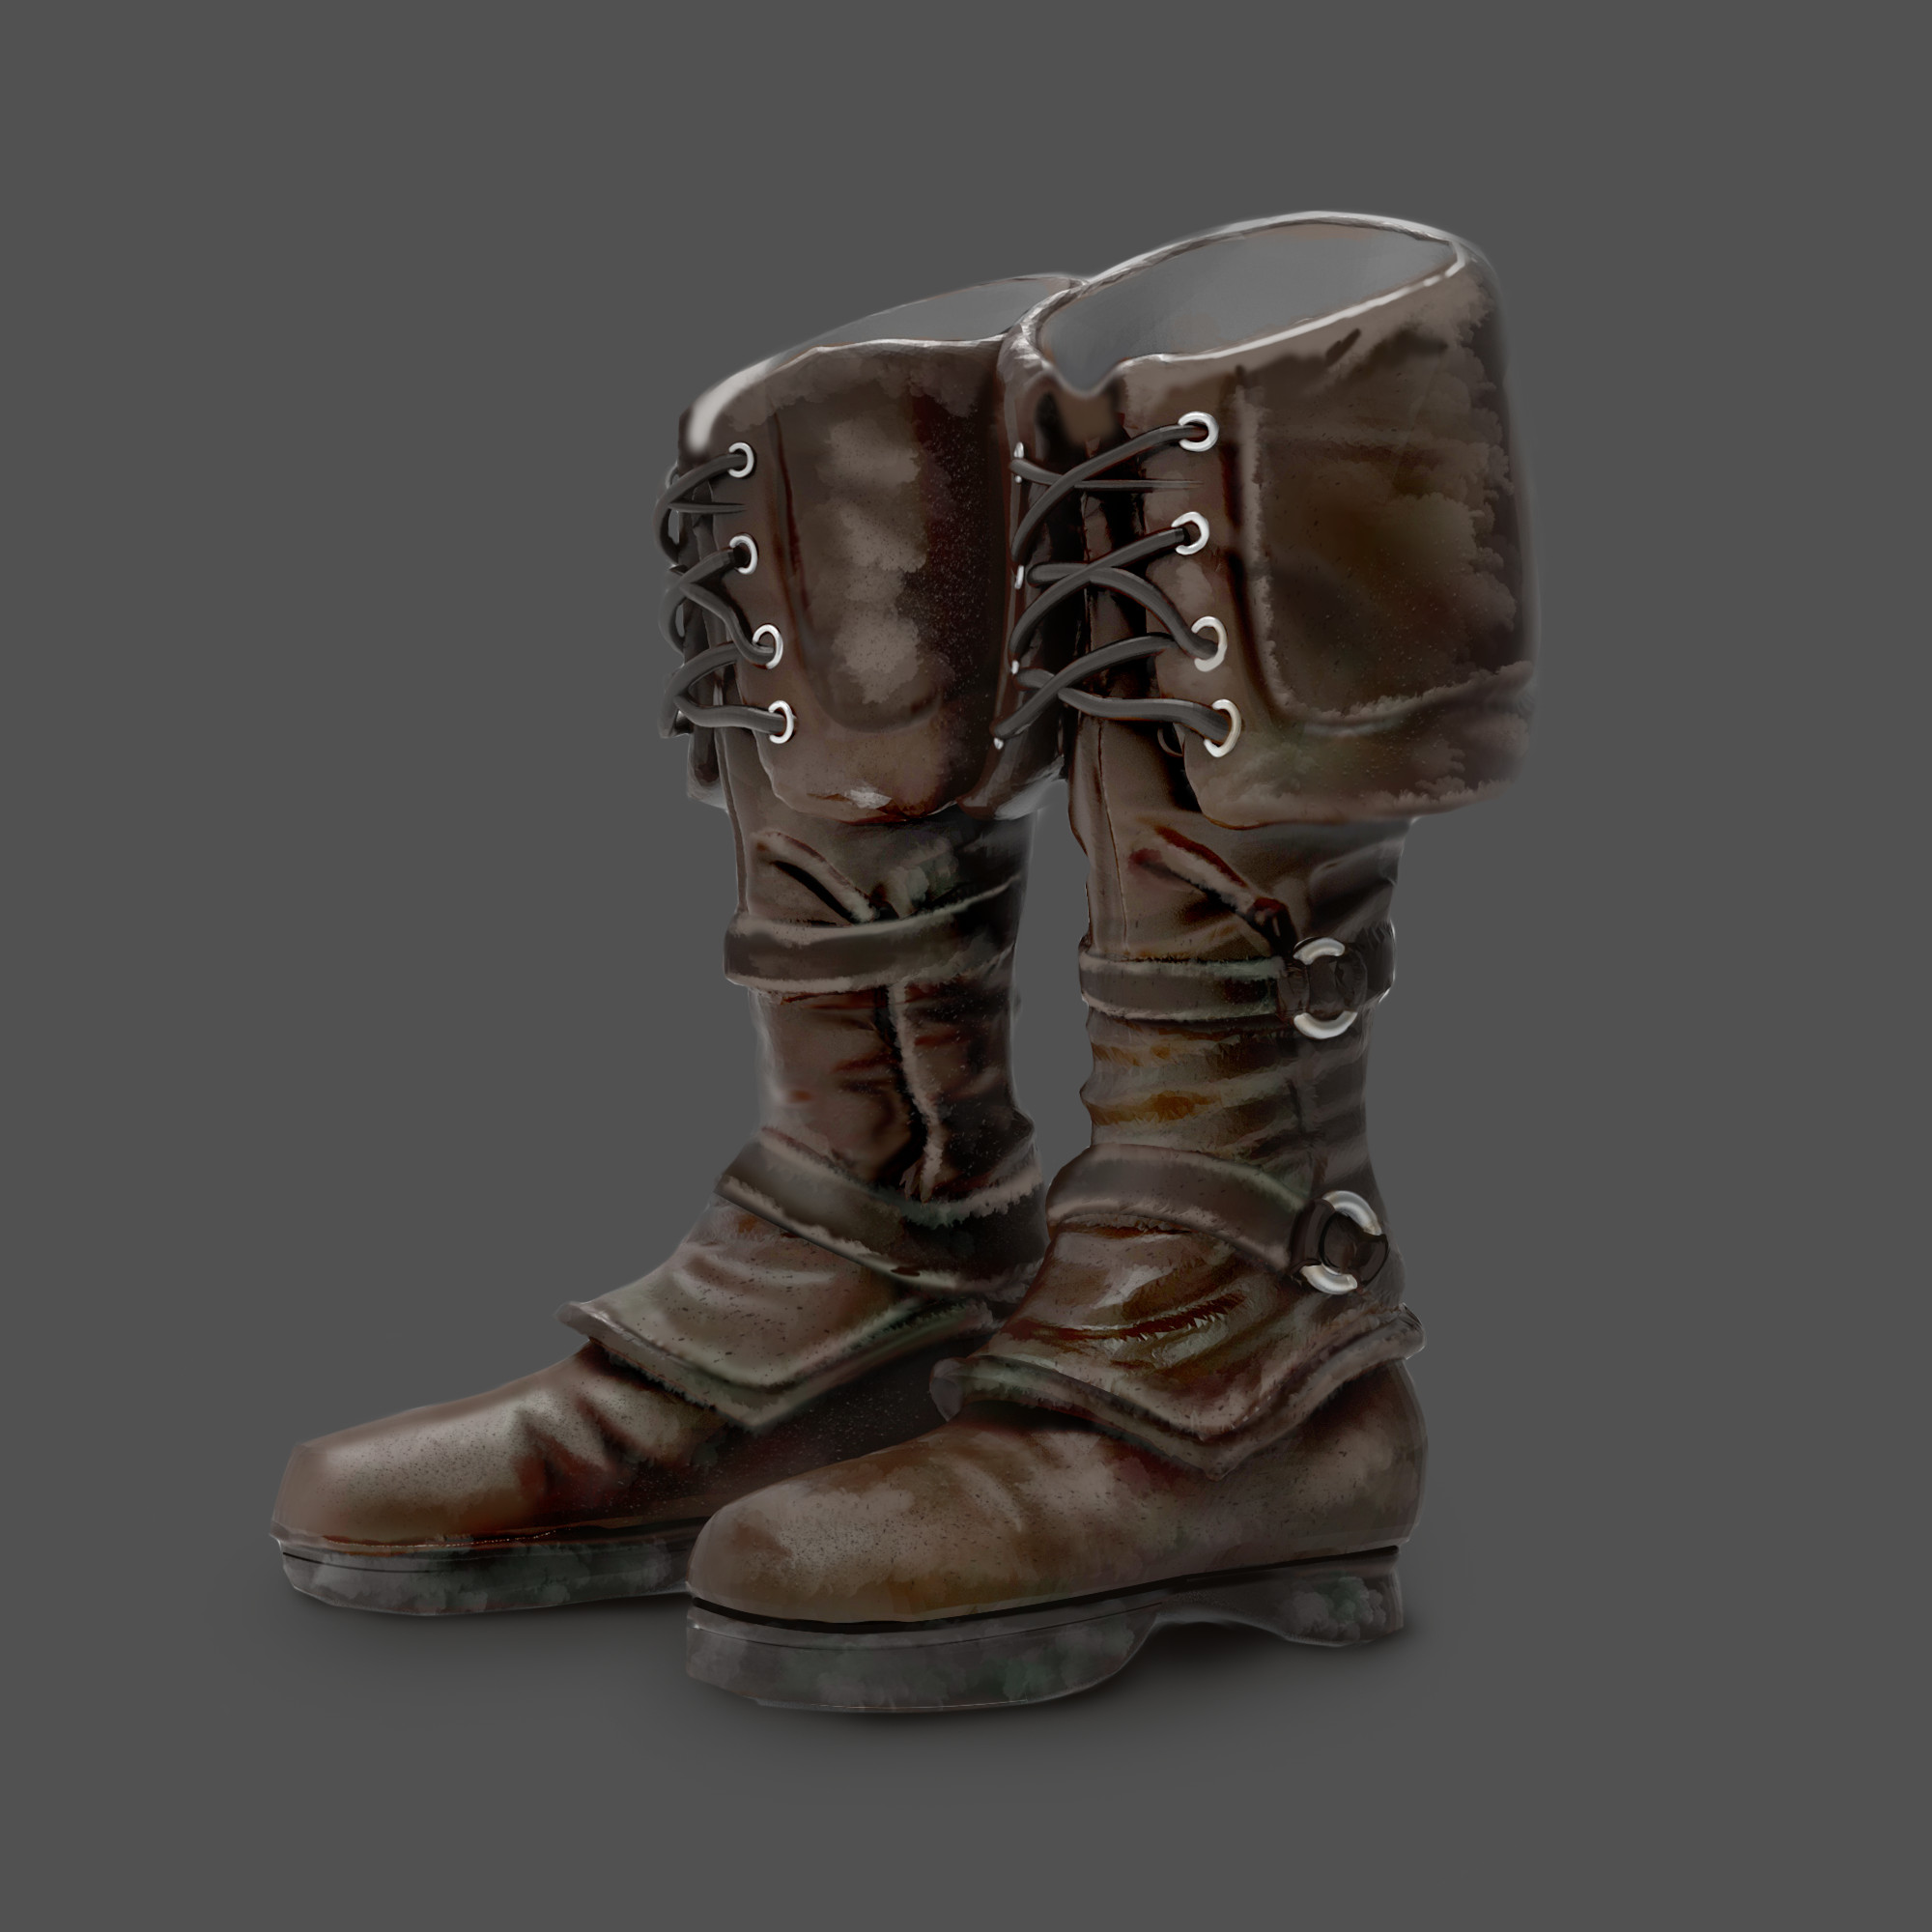 Pretty much ordinary boots, not everything in the world needs to be magical you know?